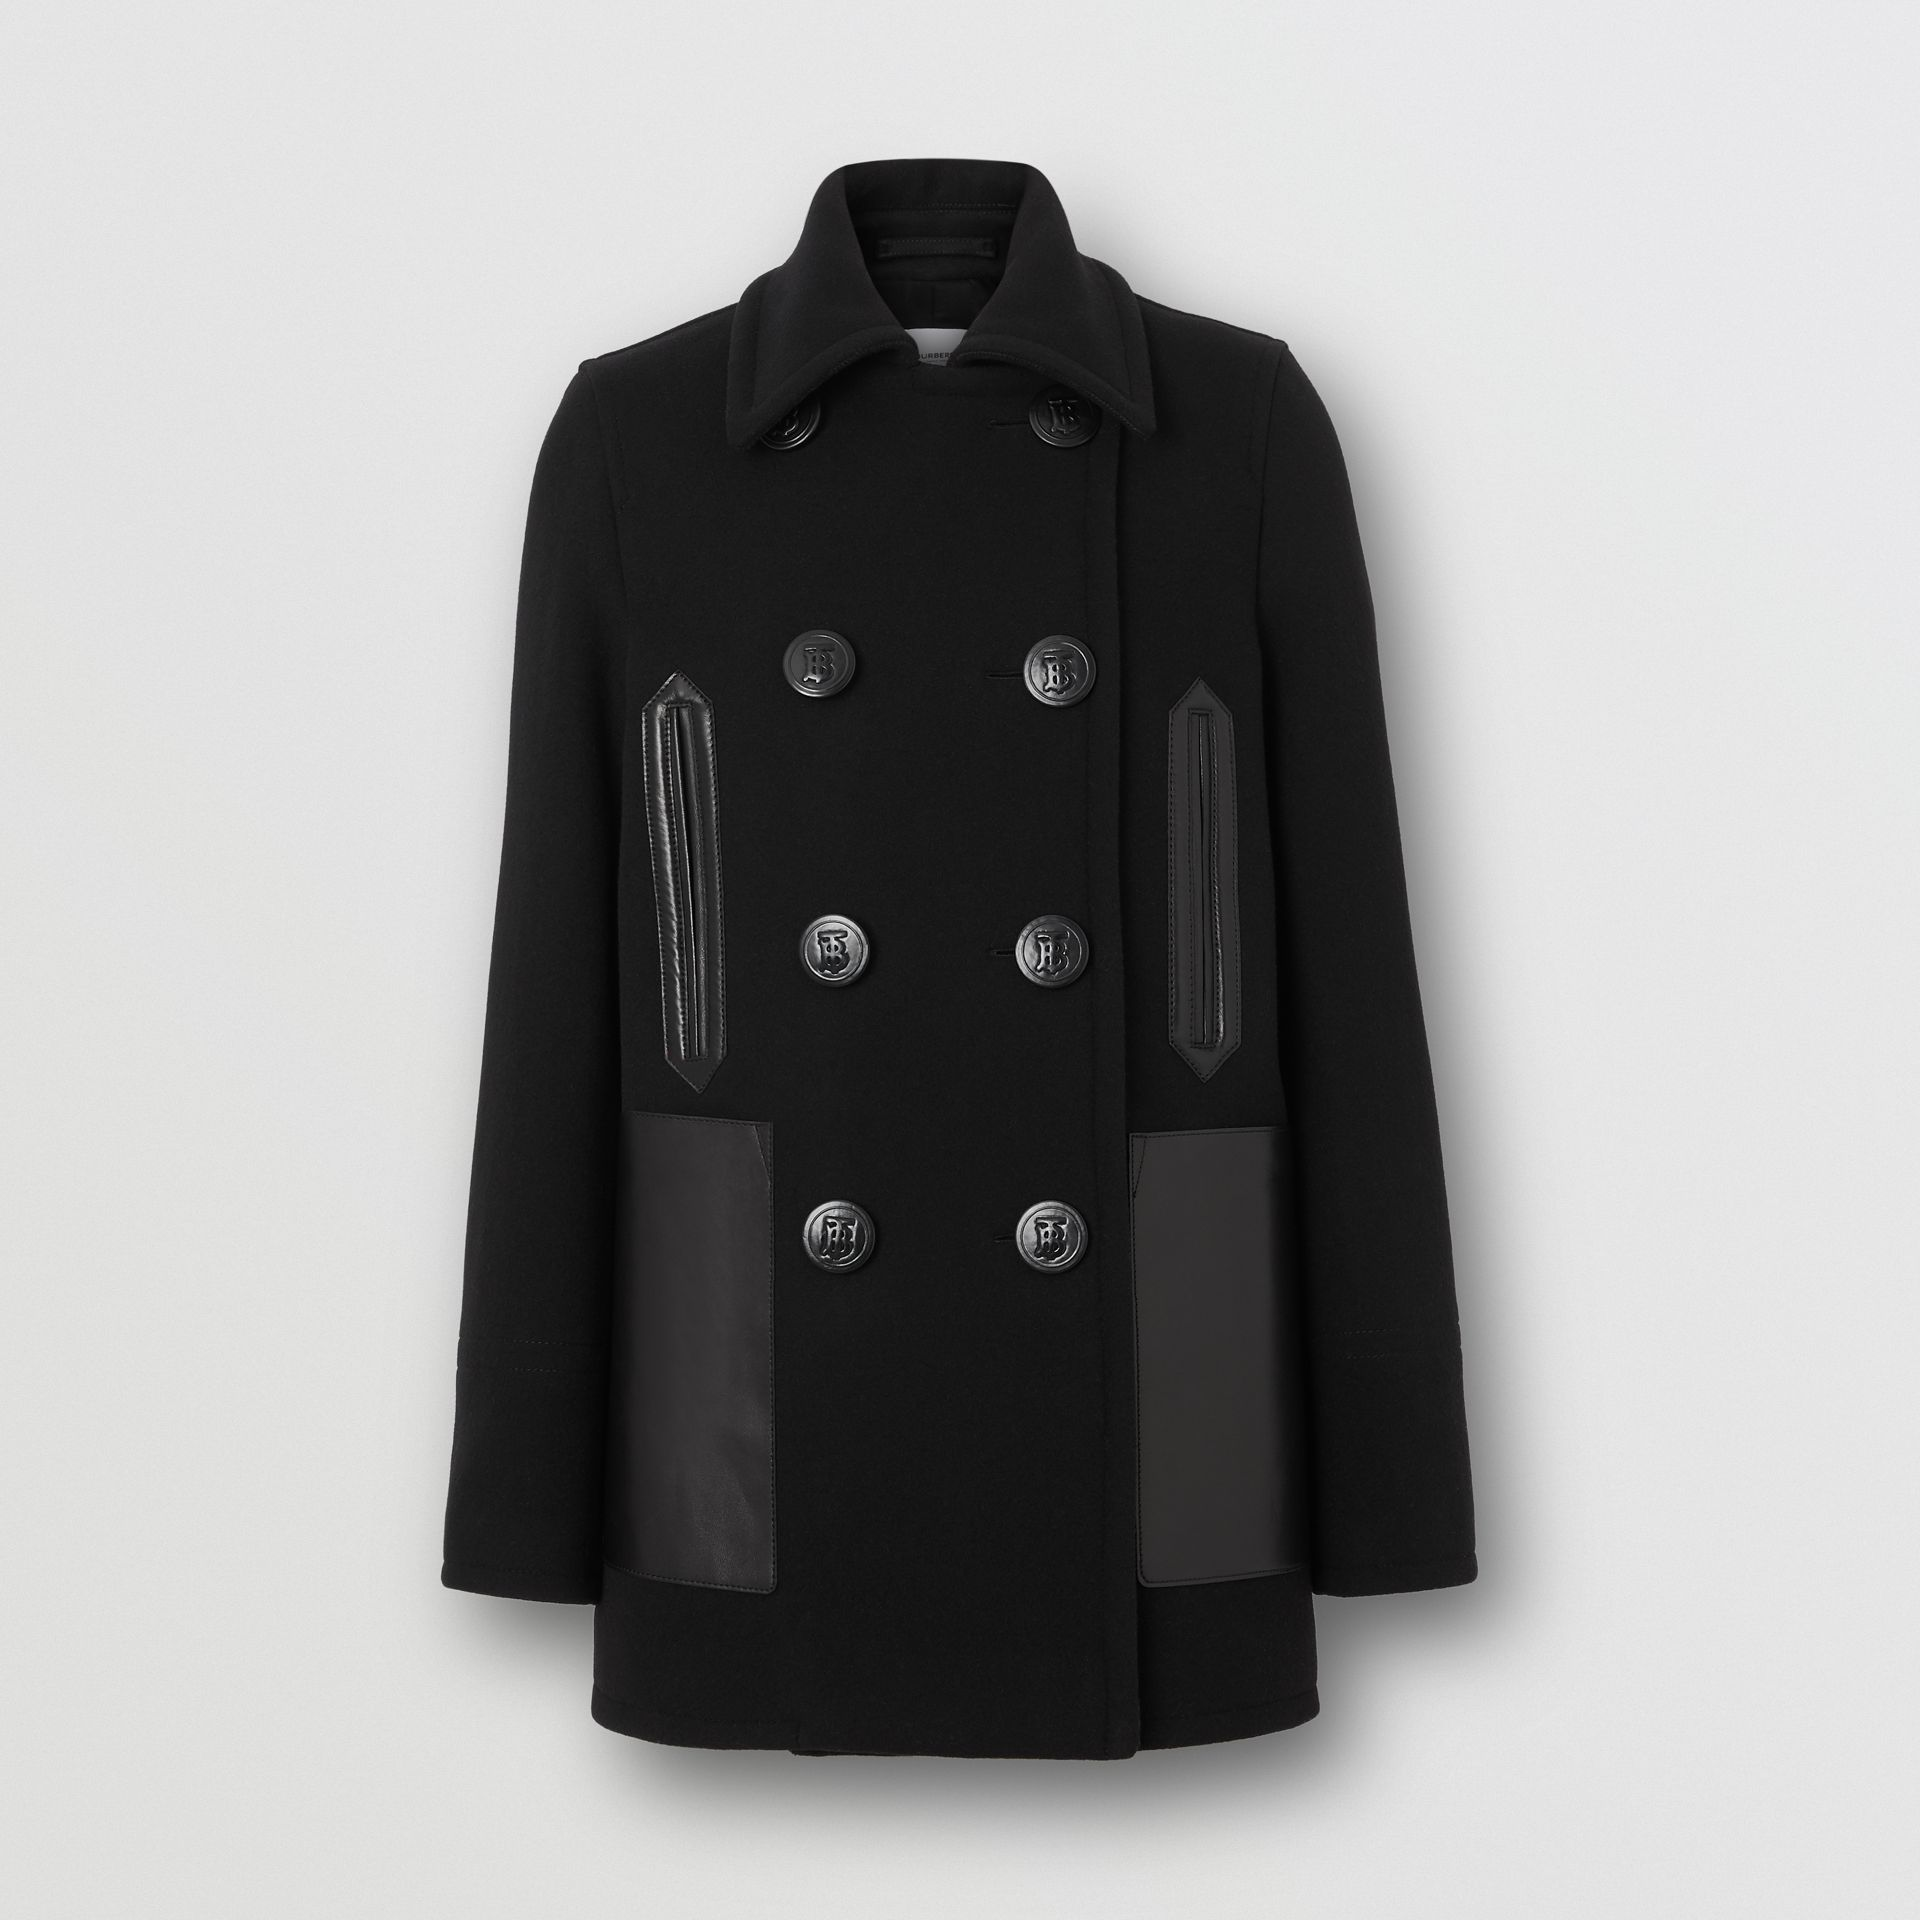 Lambskin Pocket Wool Blend Pea Coat in Black - Women | Burberry - gallery image 3